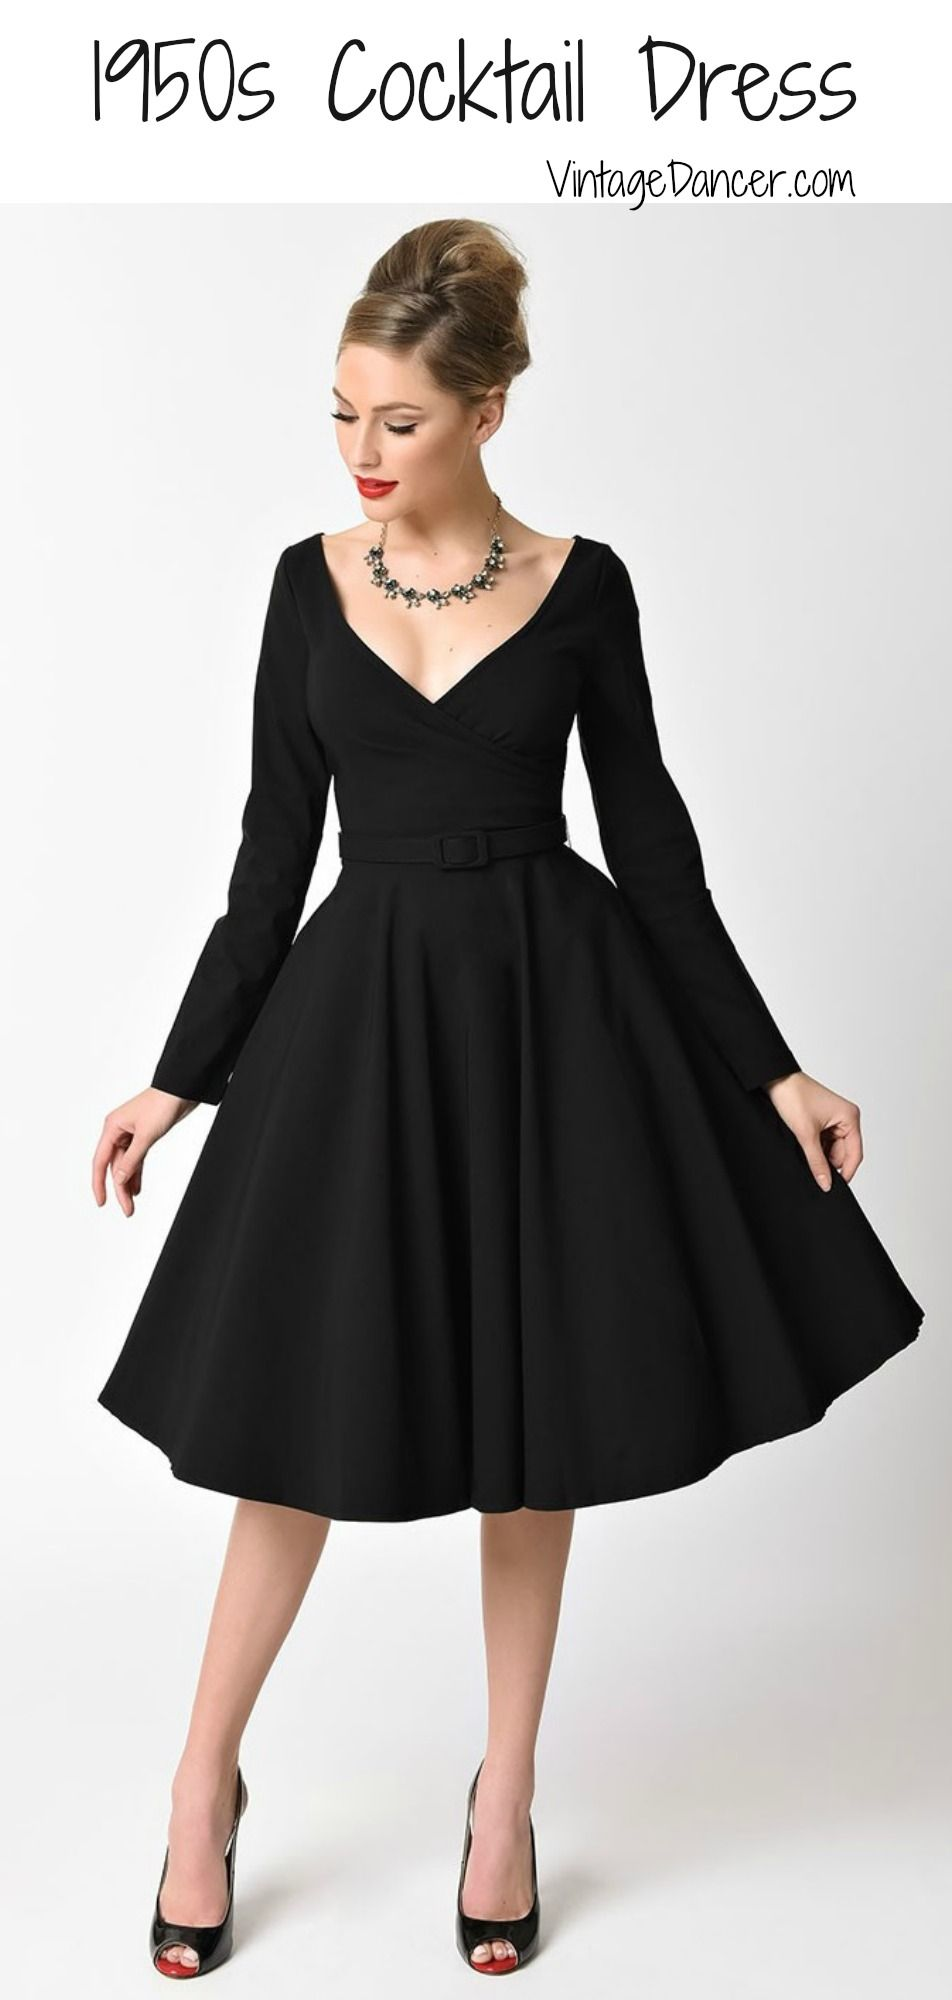 Black 1950s cocktail dresses and party dresses at VintageDancer.com 14bf1791c198